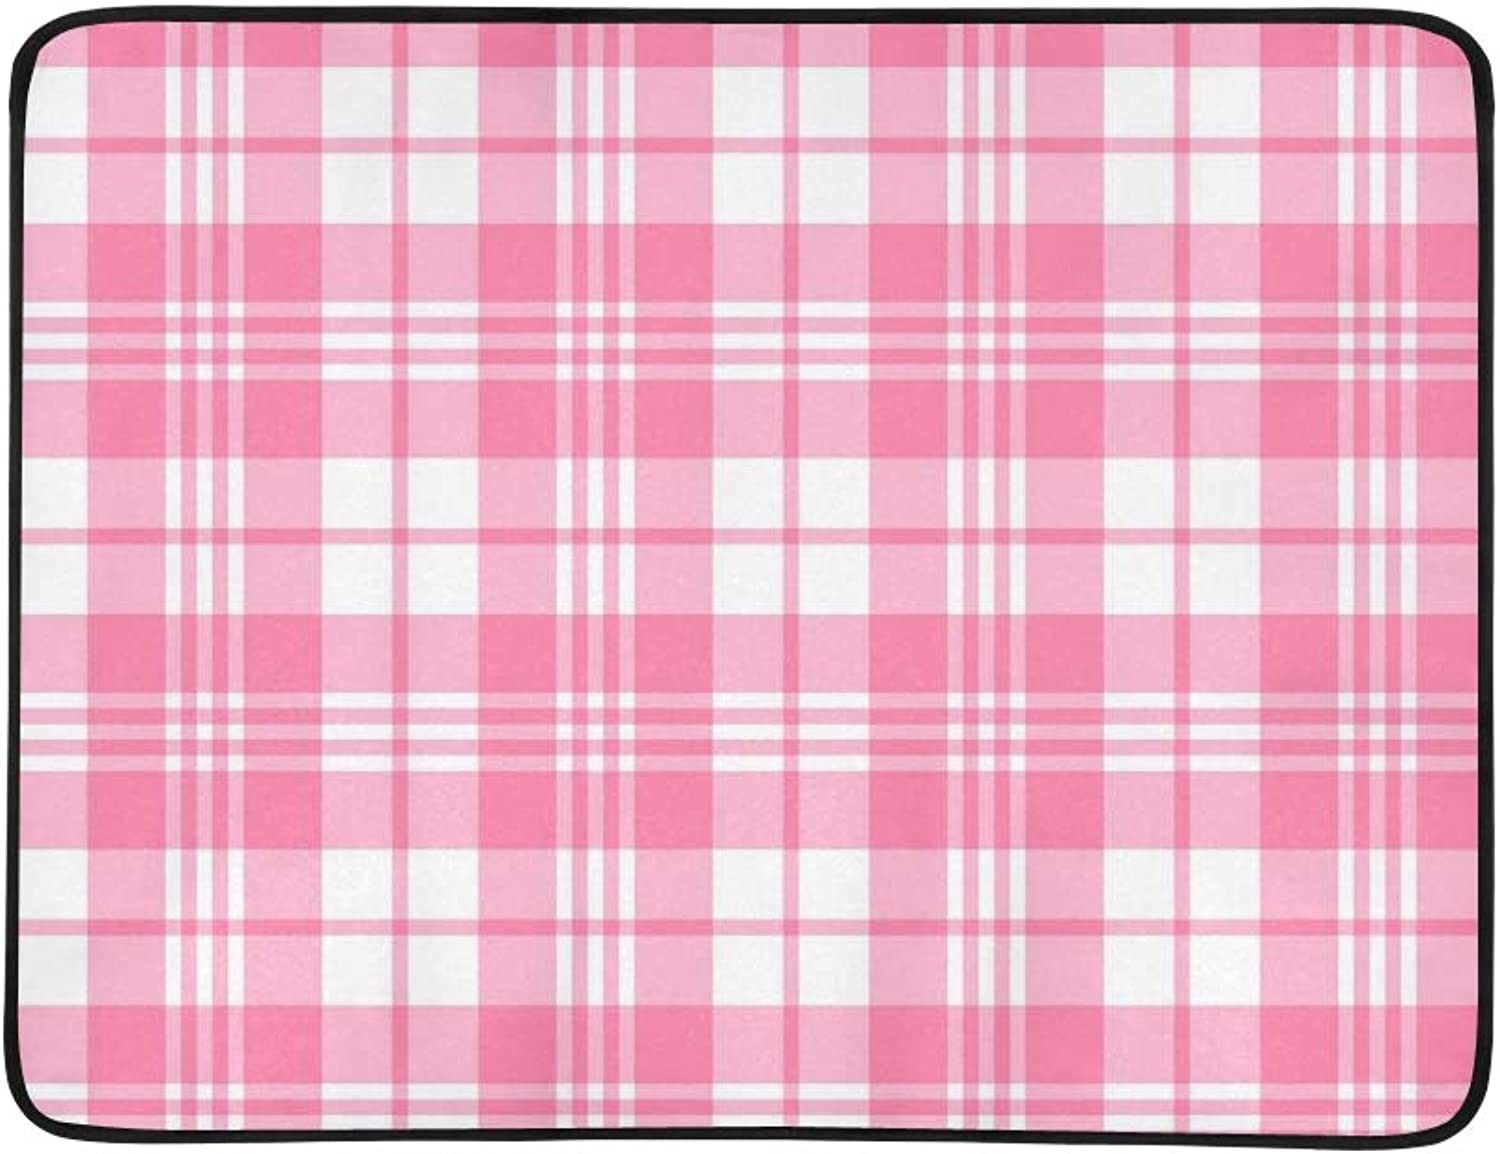 Pink Plaid Portable and Foldable Blanket Mat 60x78 Inch Handy Mat for Camping Picnic Beach Indoor Outdoor Travel